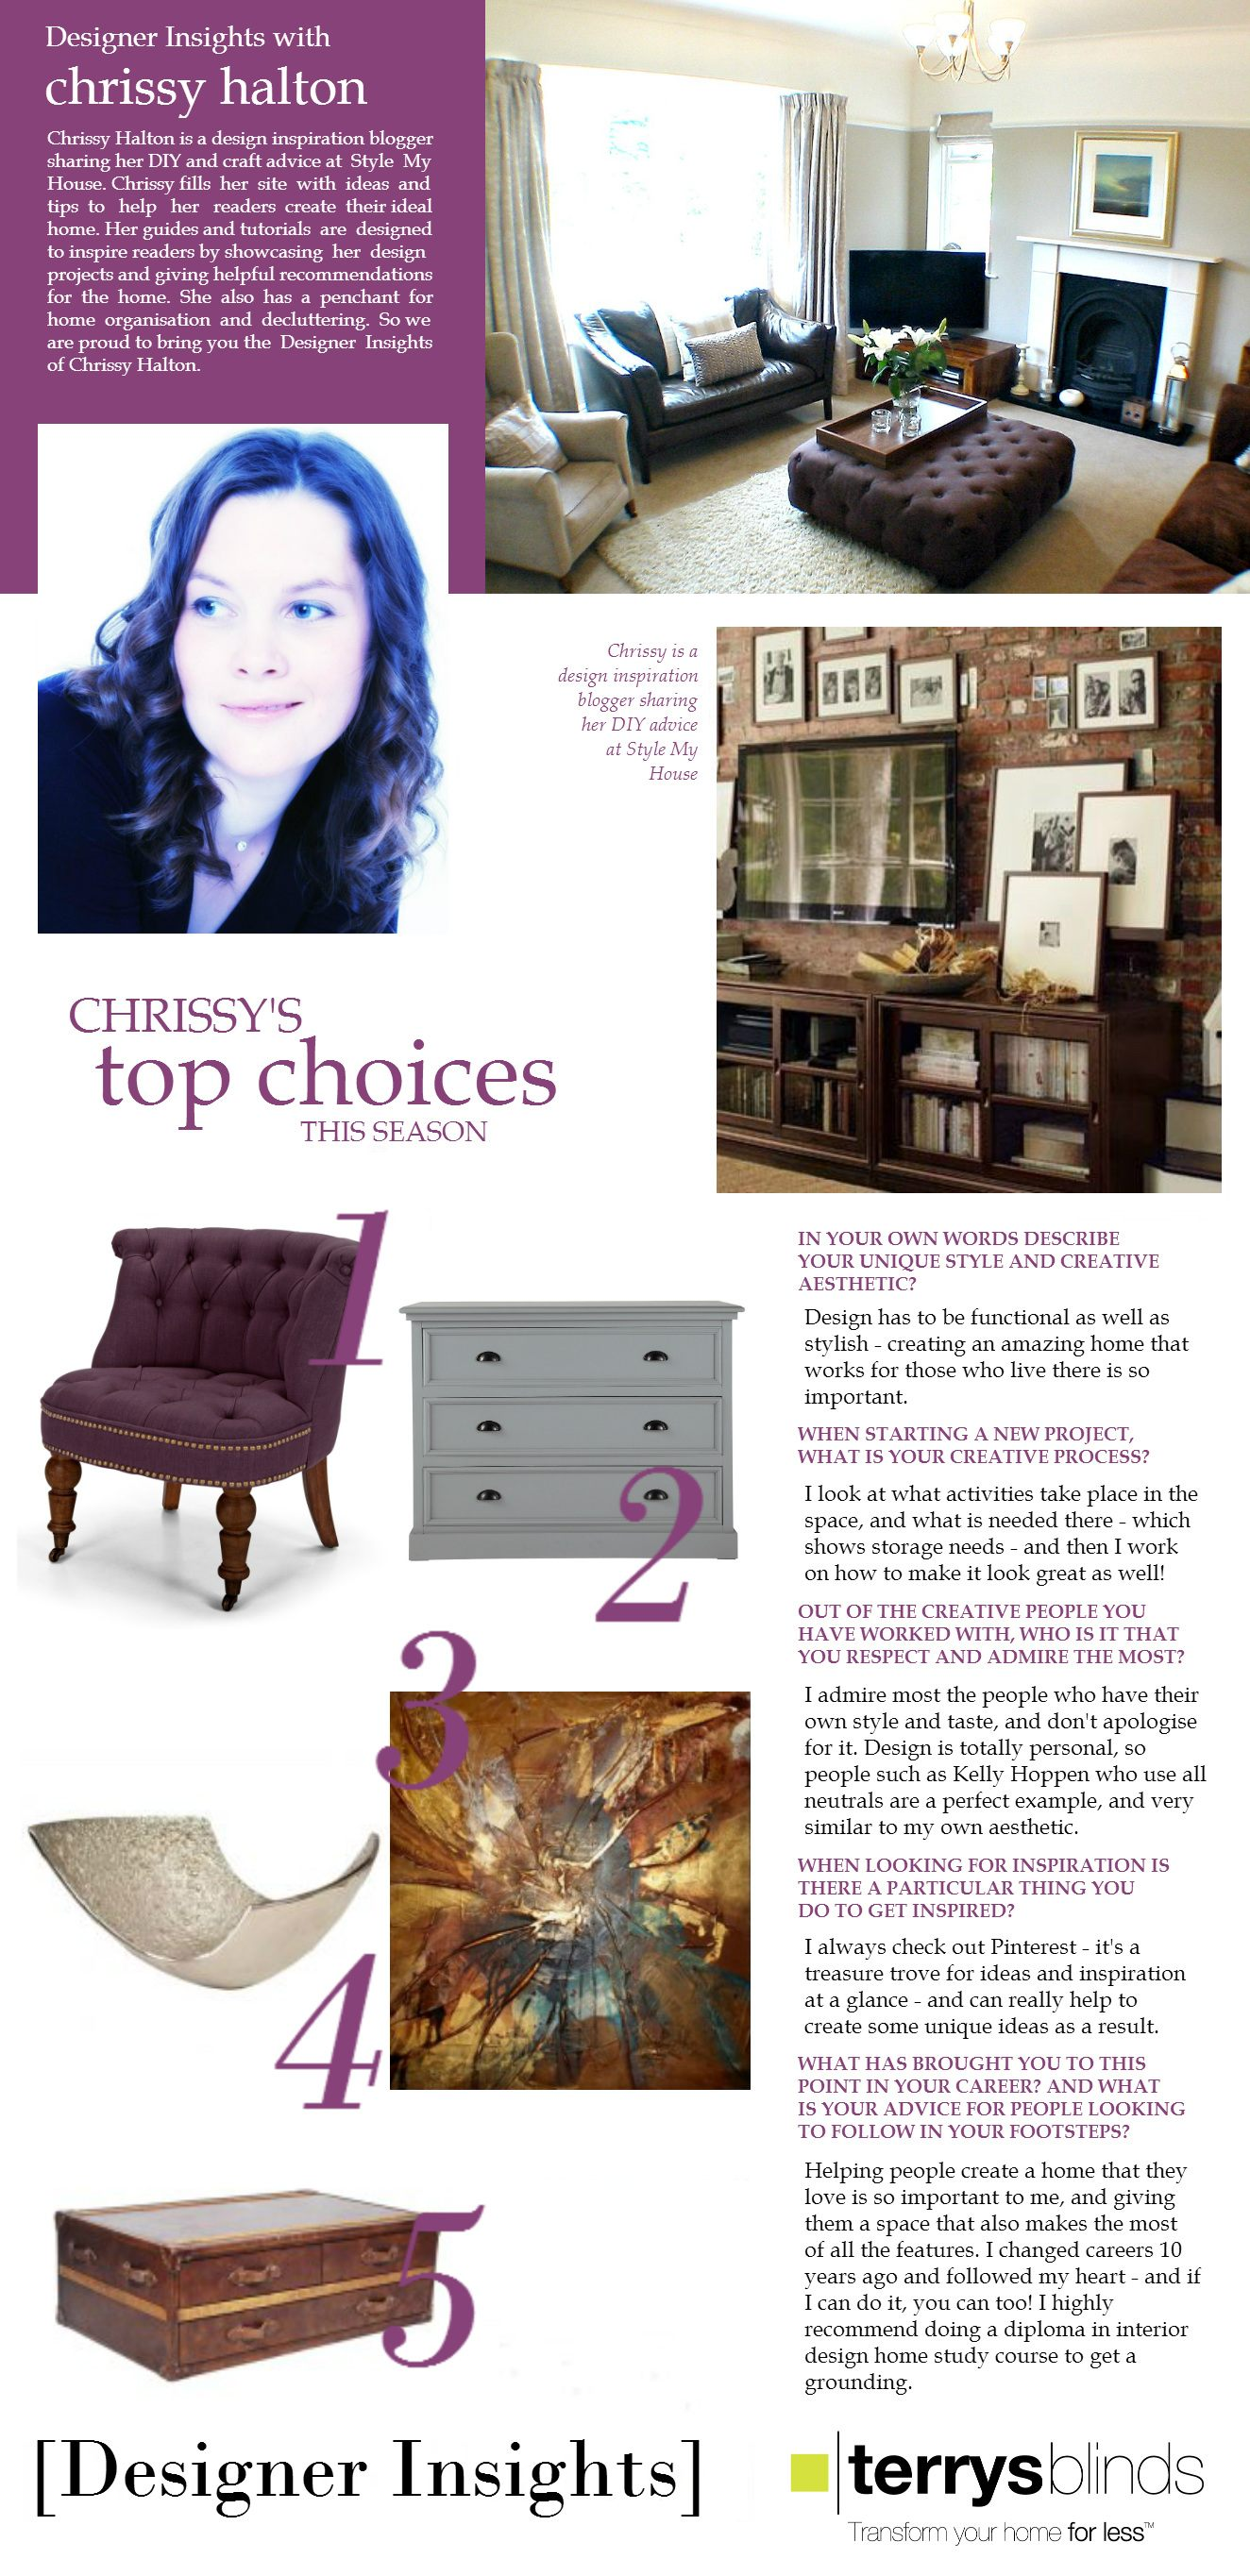 Designer Insights - Chrissy Halton - Part Two